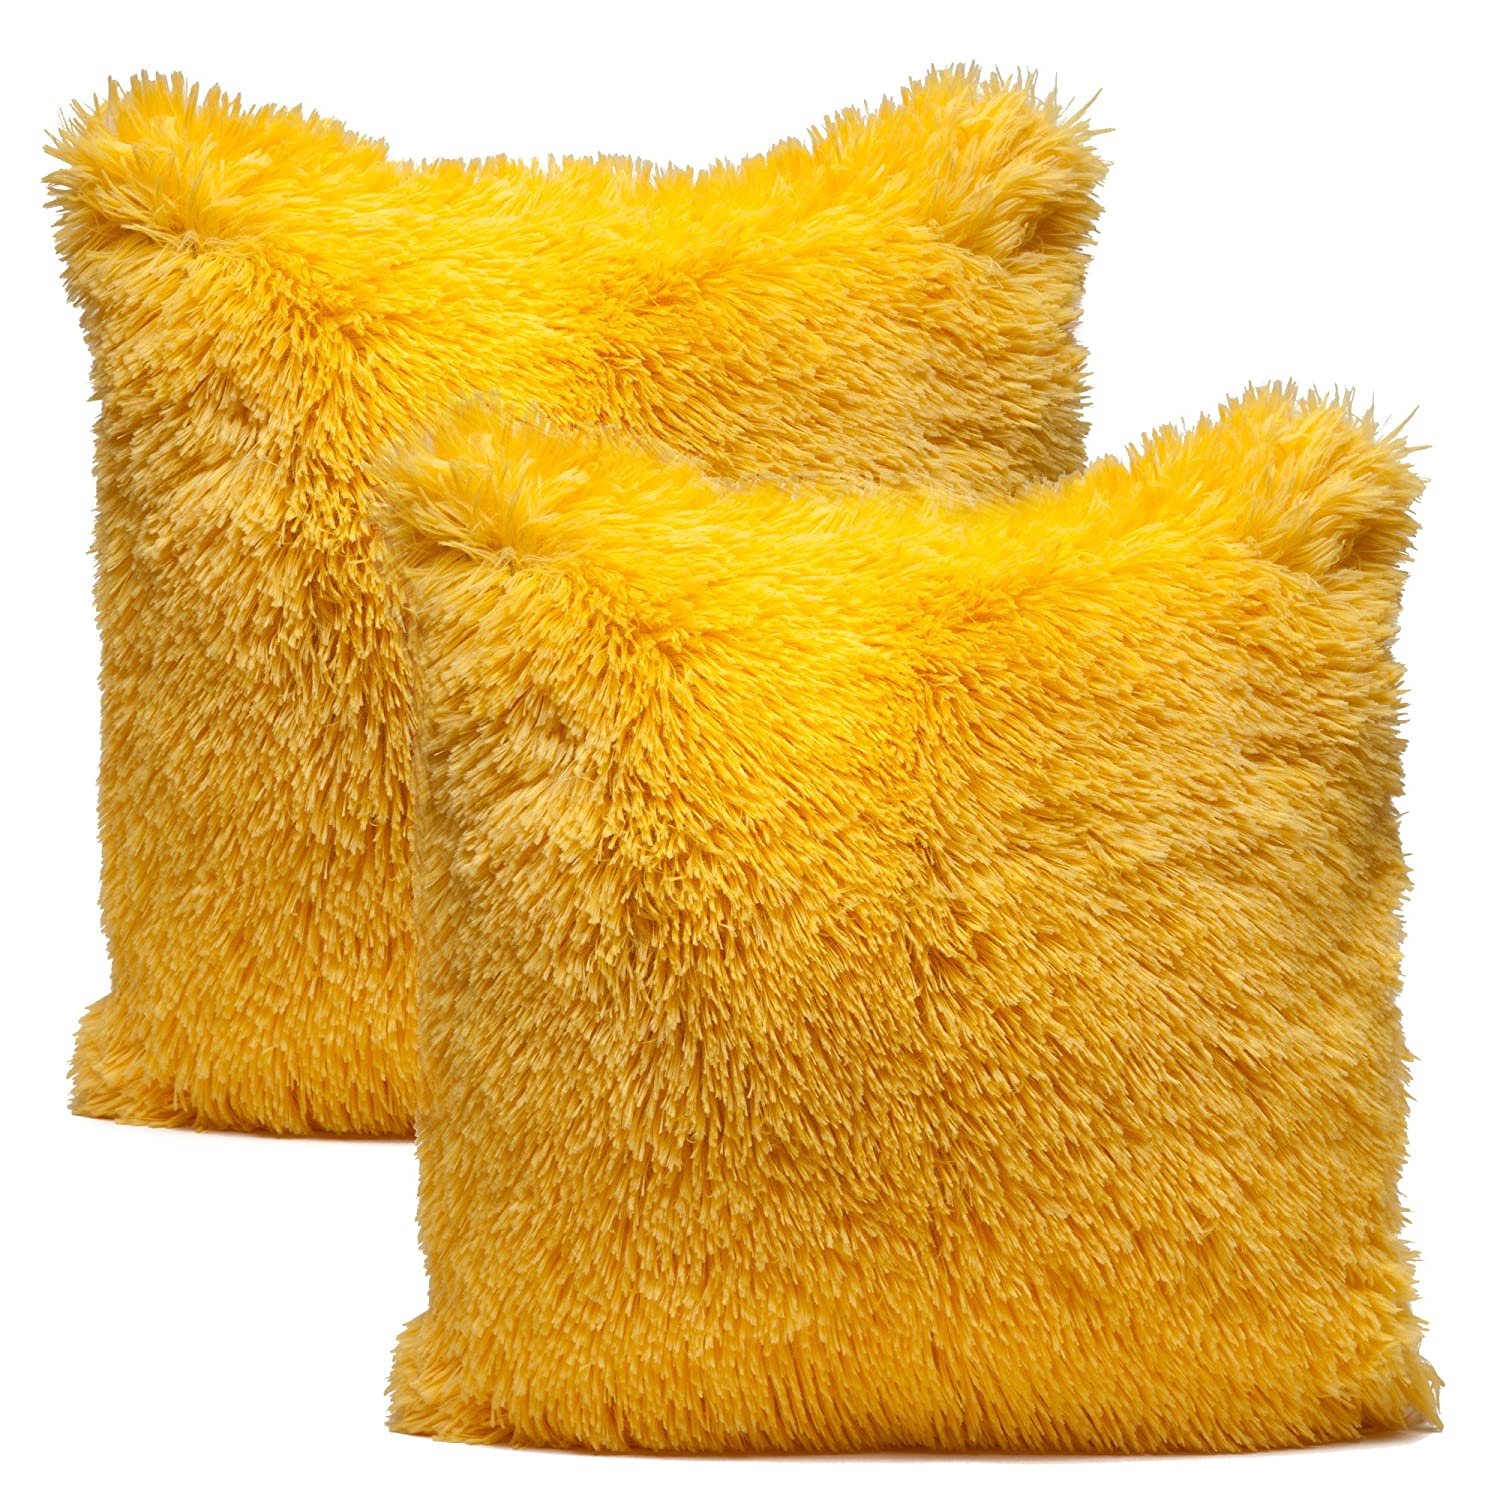 Chanasya Super Soft Long Shaggy Chic Fuzzy Fur Faux Fur Warm Elegent Cozy Yellow Throw Pillow ...